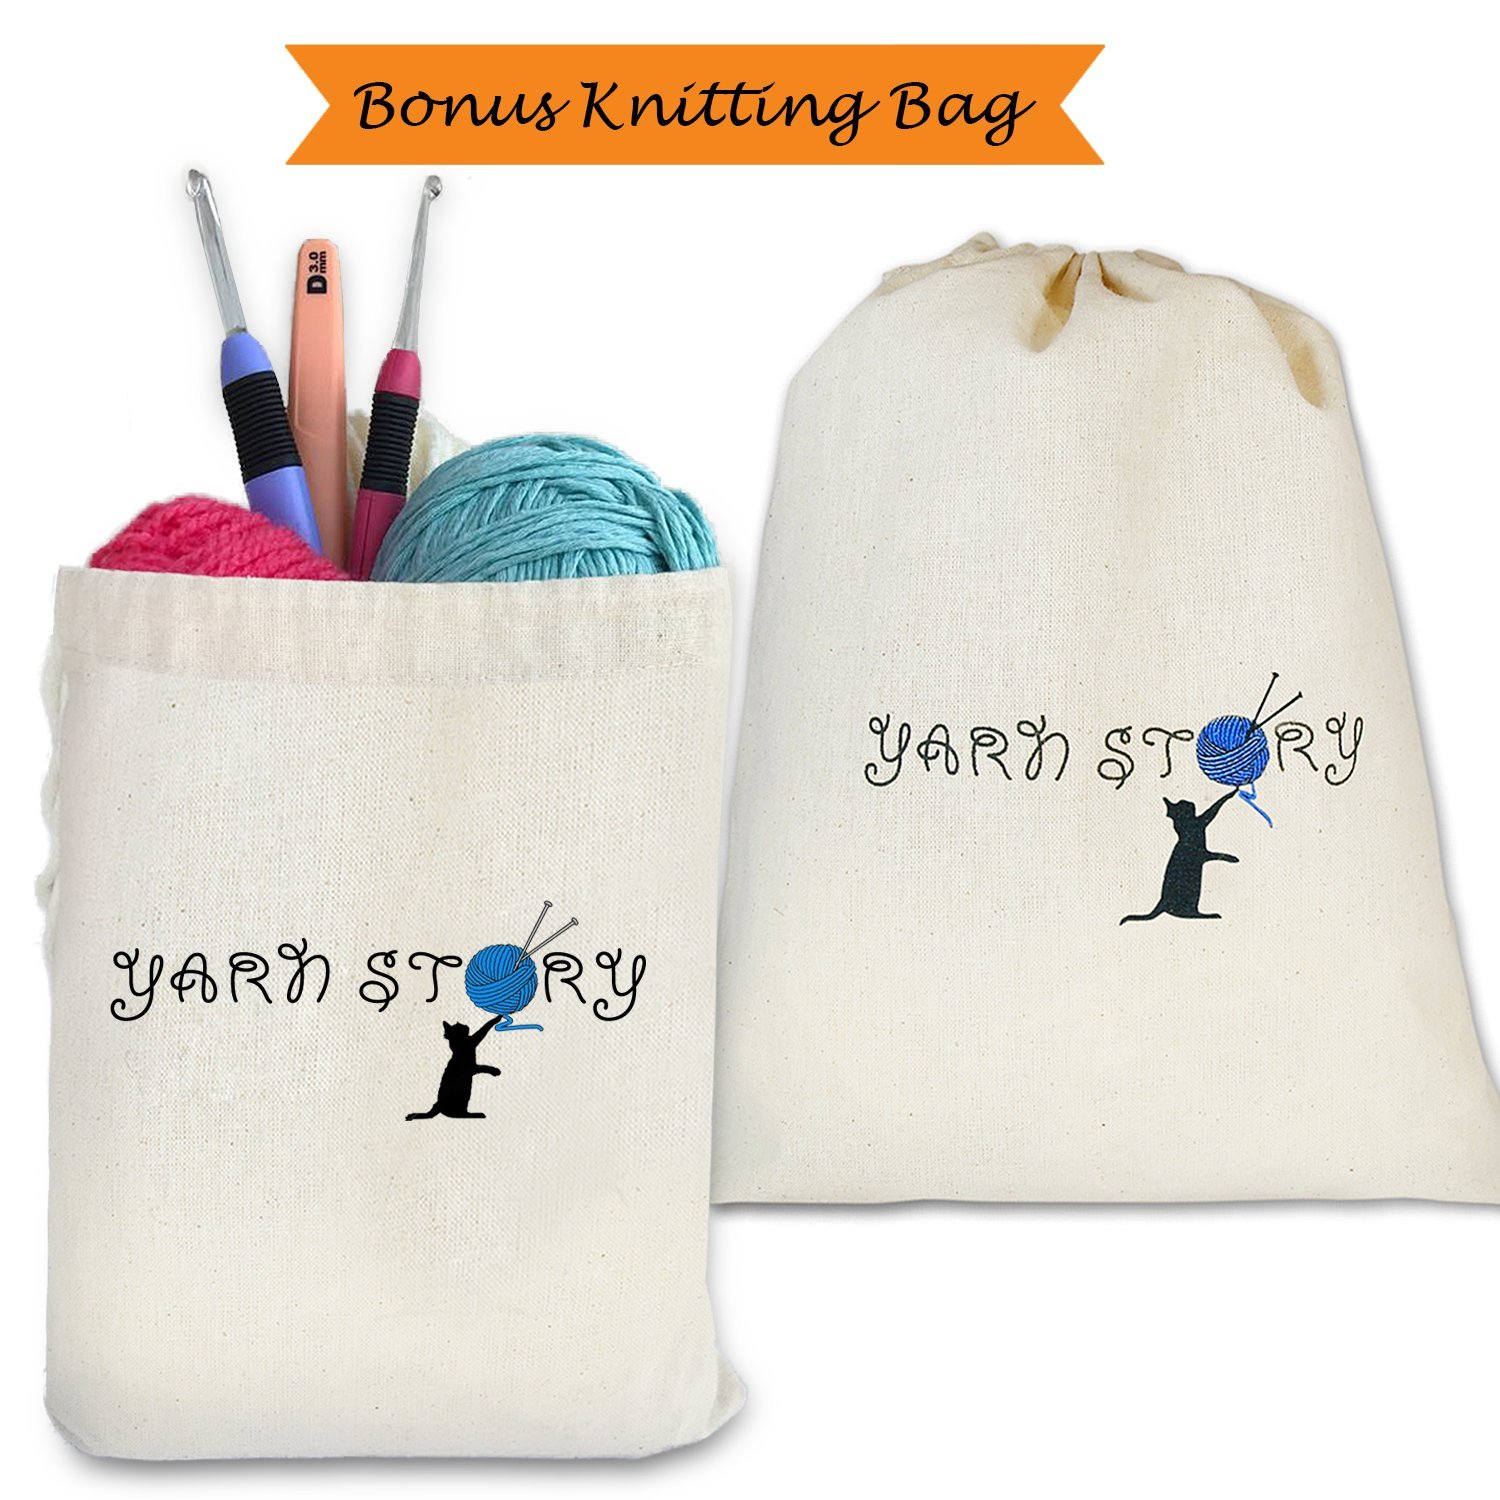 Yarn Bowl Walnut and Knitting Bag Bundle - 7''X3'', Wooden, Handmade from Special European Walnut Wood - Storage Organizer, Holder for Knitting and Crochet by Yarn Story- Perfect Gift! by YARN STORY (Image #4)